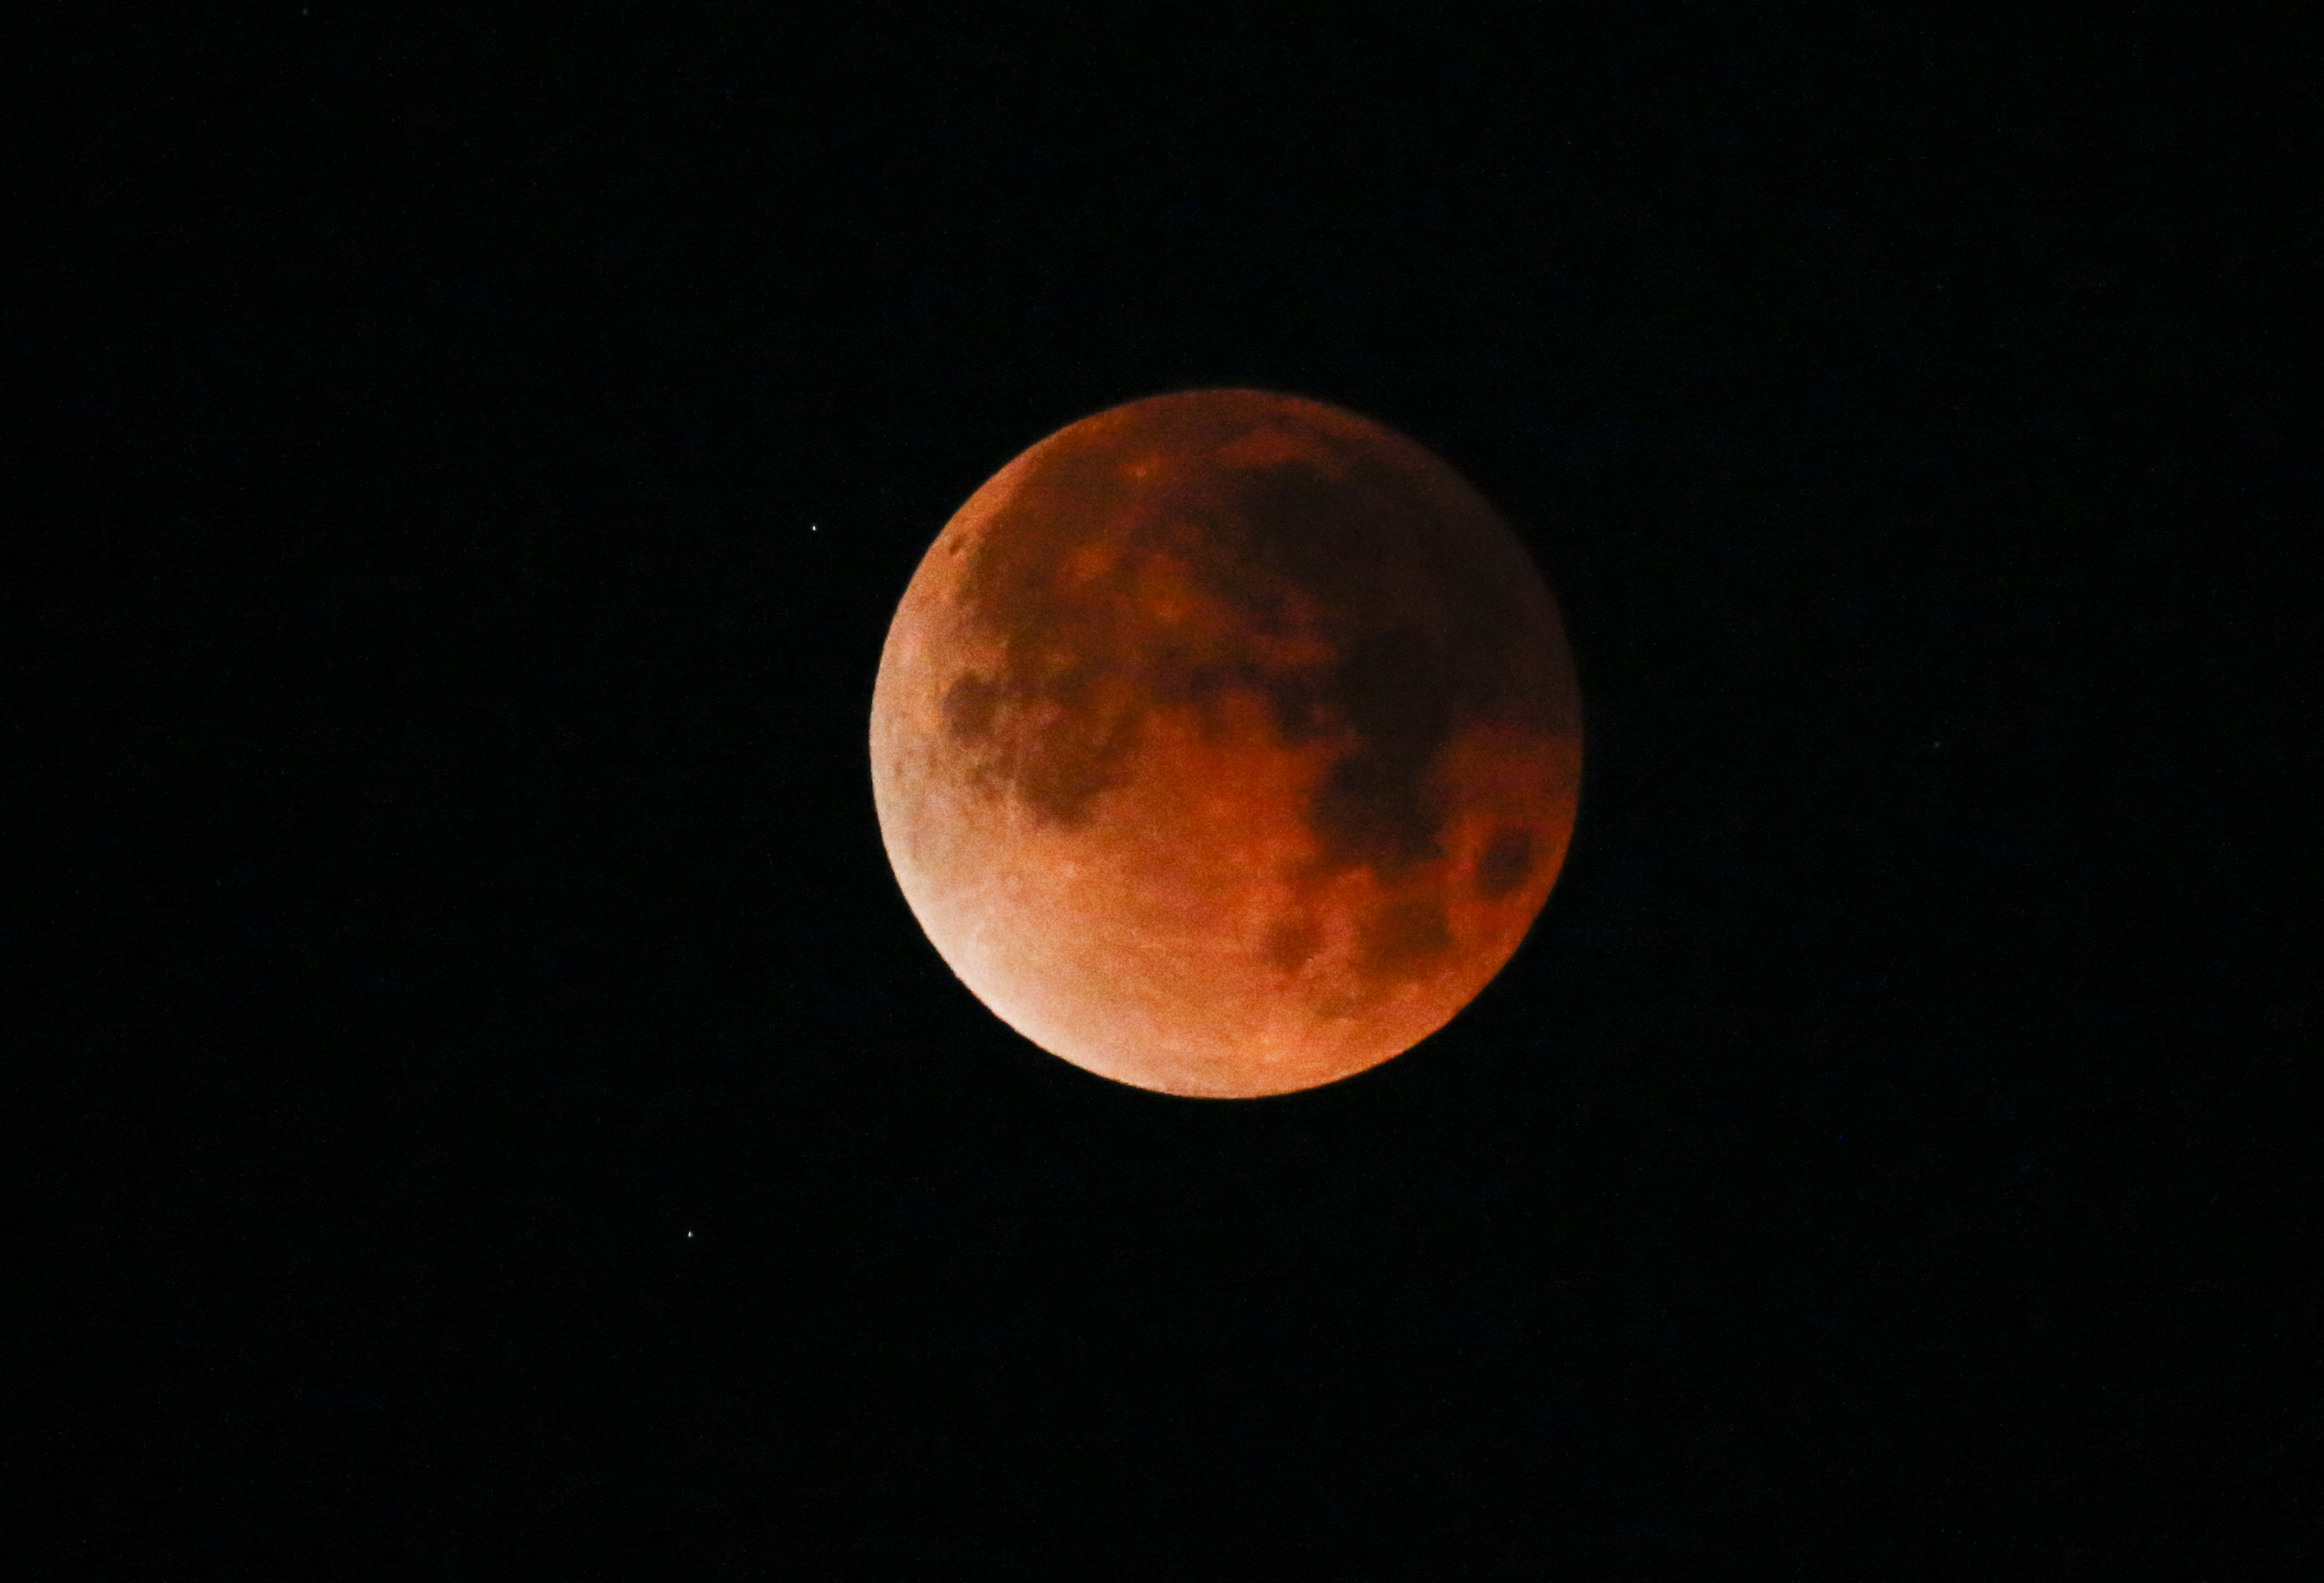 lunar eclipse december 12 2019 astrology time